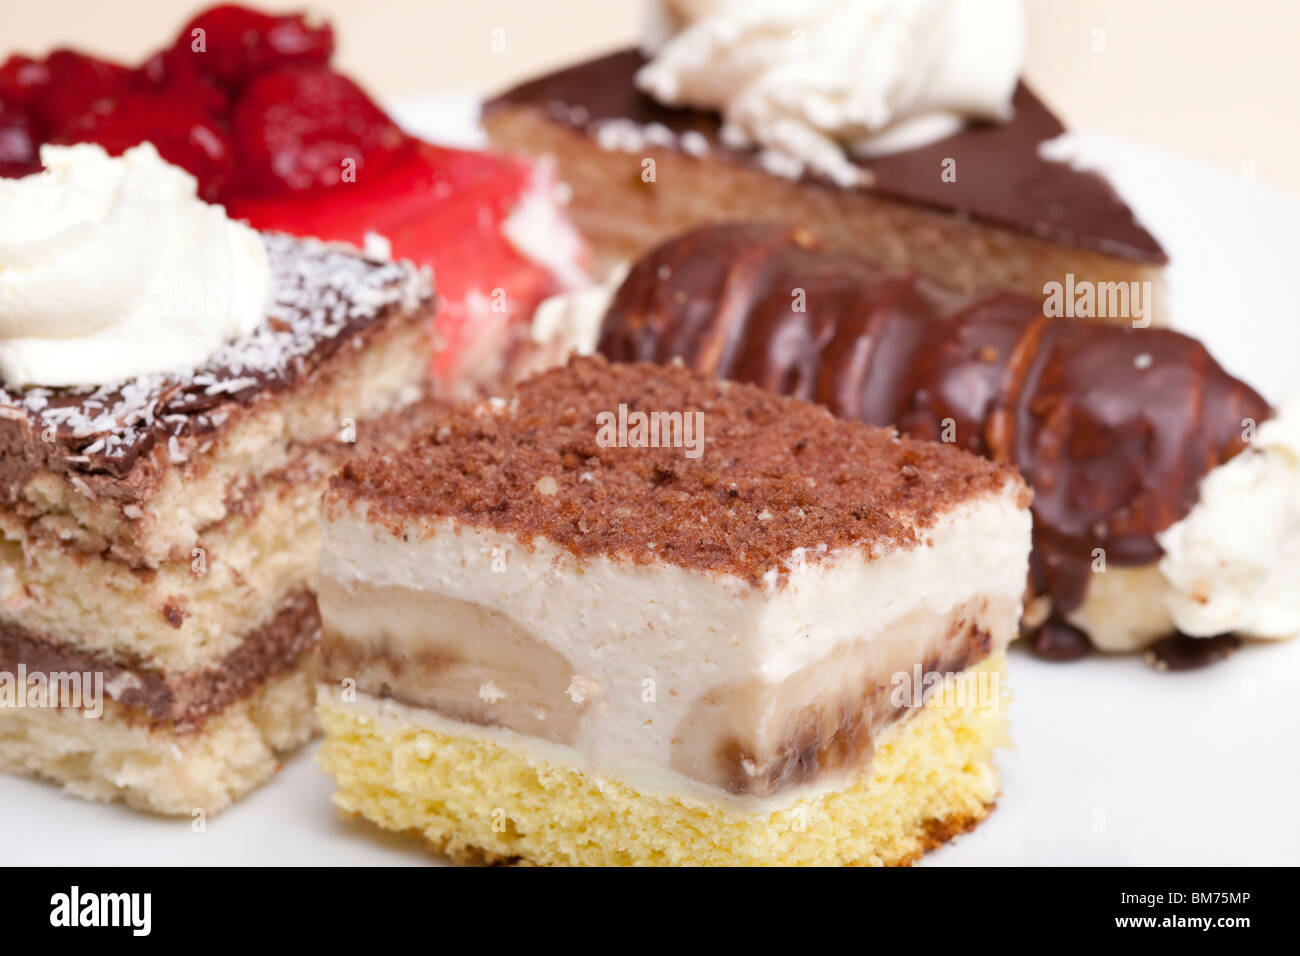 Various cakes, sweet and delicious - Stock Image